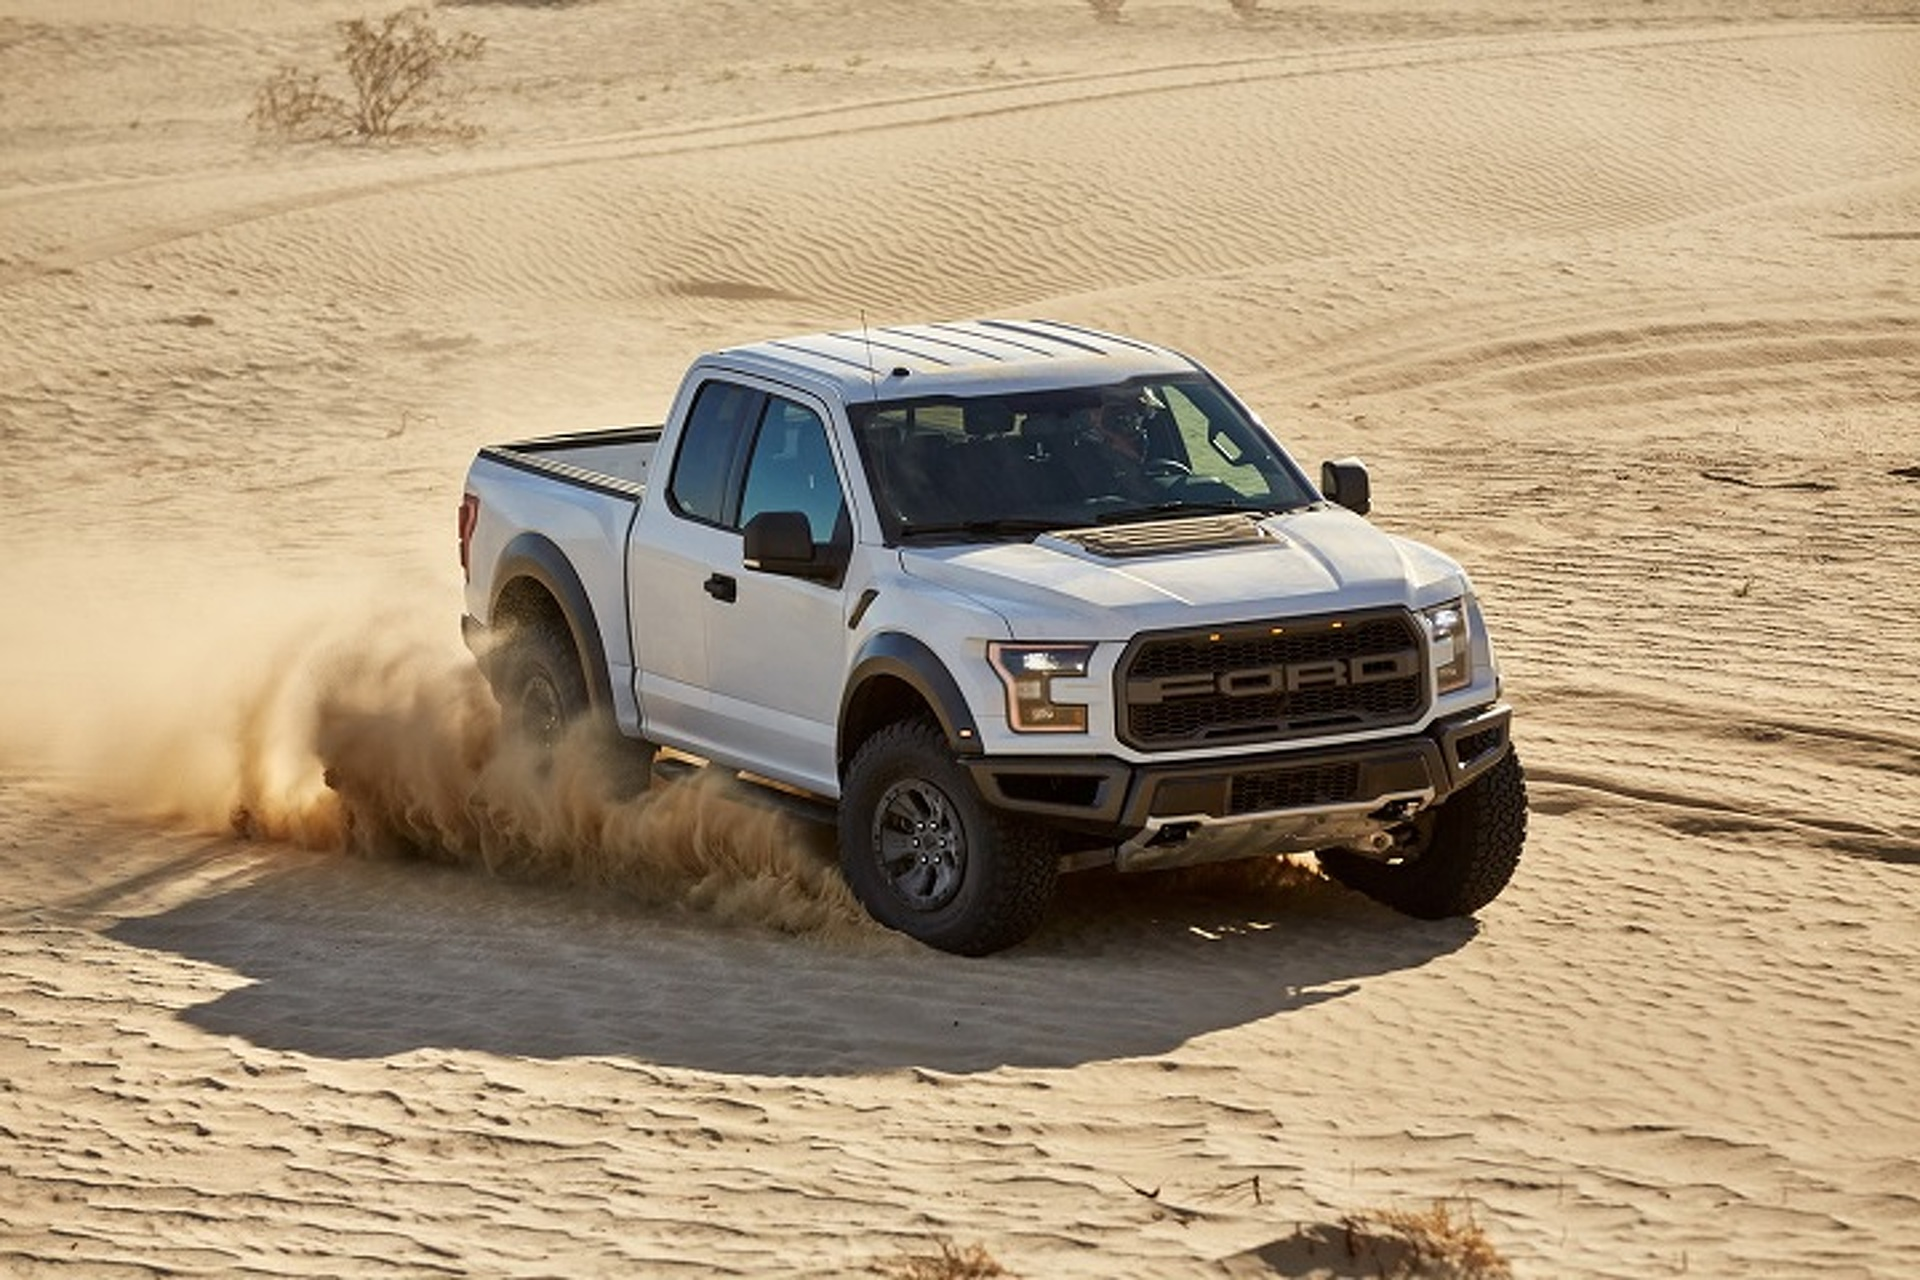 Pleasing The 2017 Ford Raptor Will Have Five Normal Driving Modes And One Wiring Cloud Orsalboapumohammedshrineorg